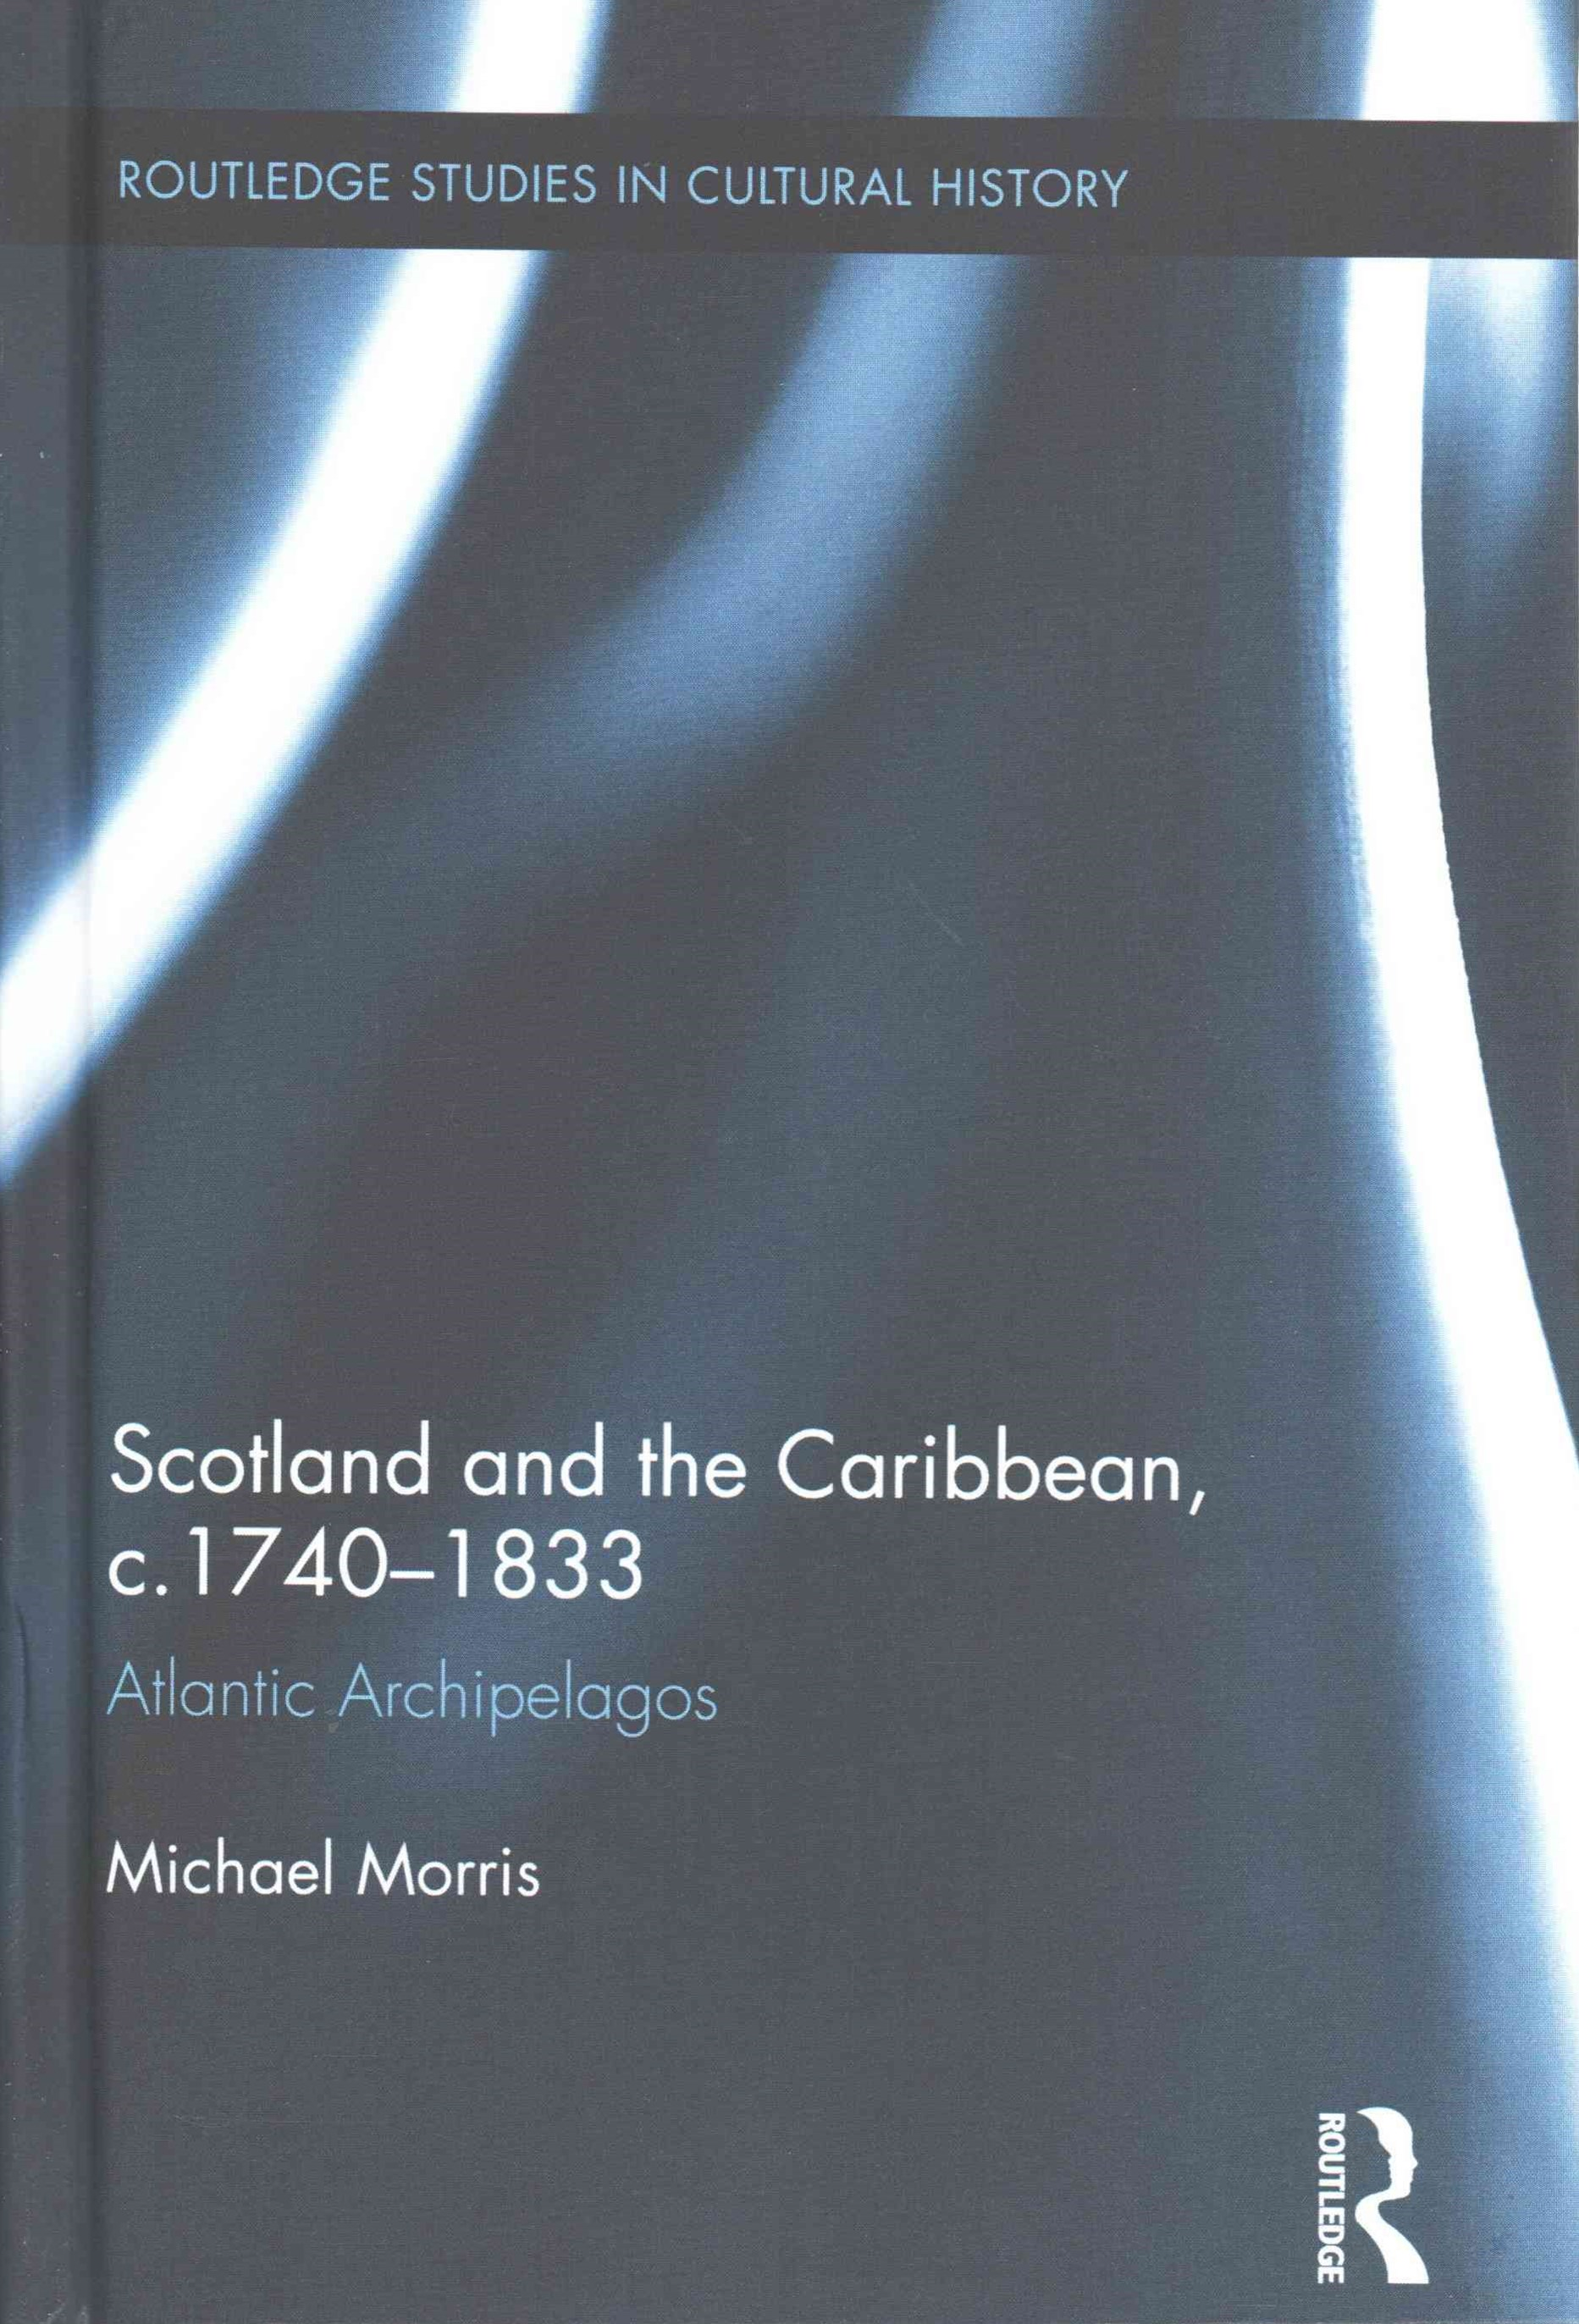 Scotland and the Caribbean, C.1740-1833